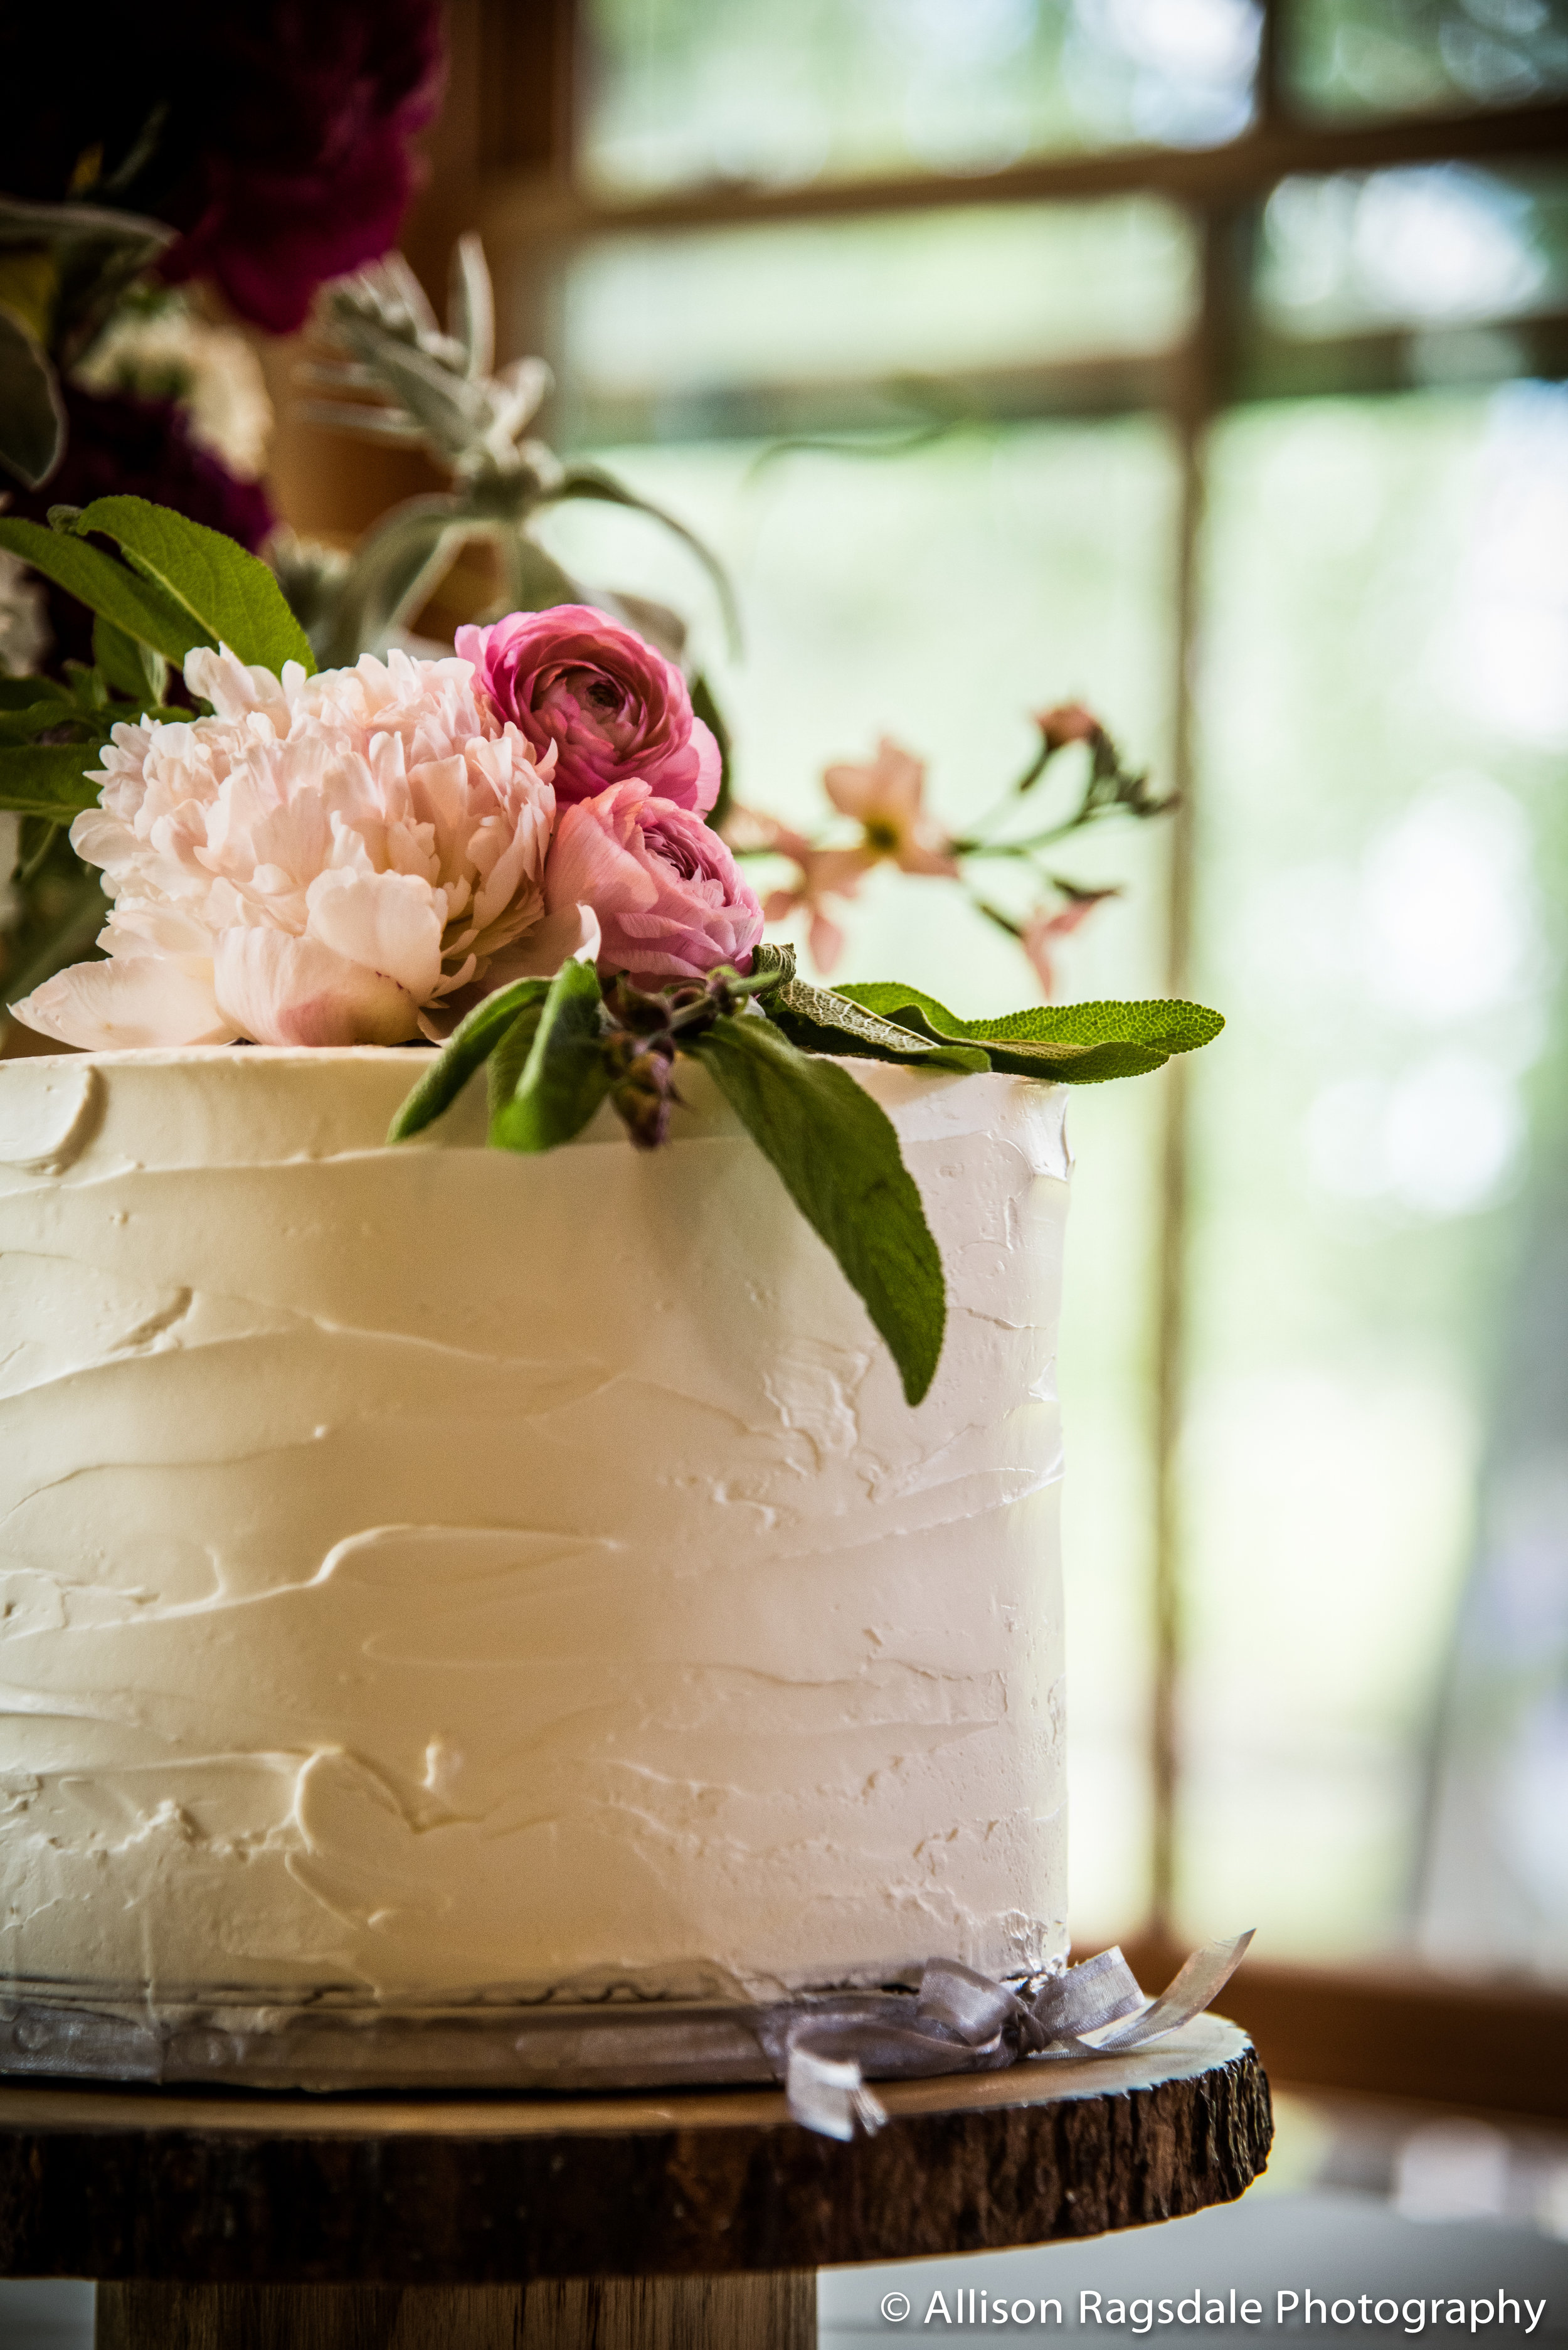 Allison Ragsdale Photography, Skillfully Decadent cake